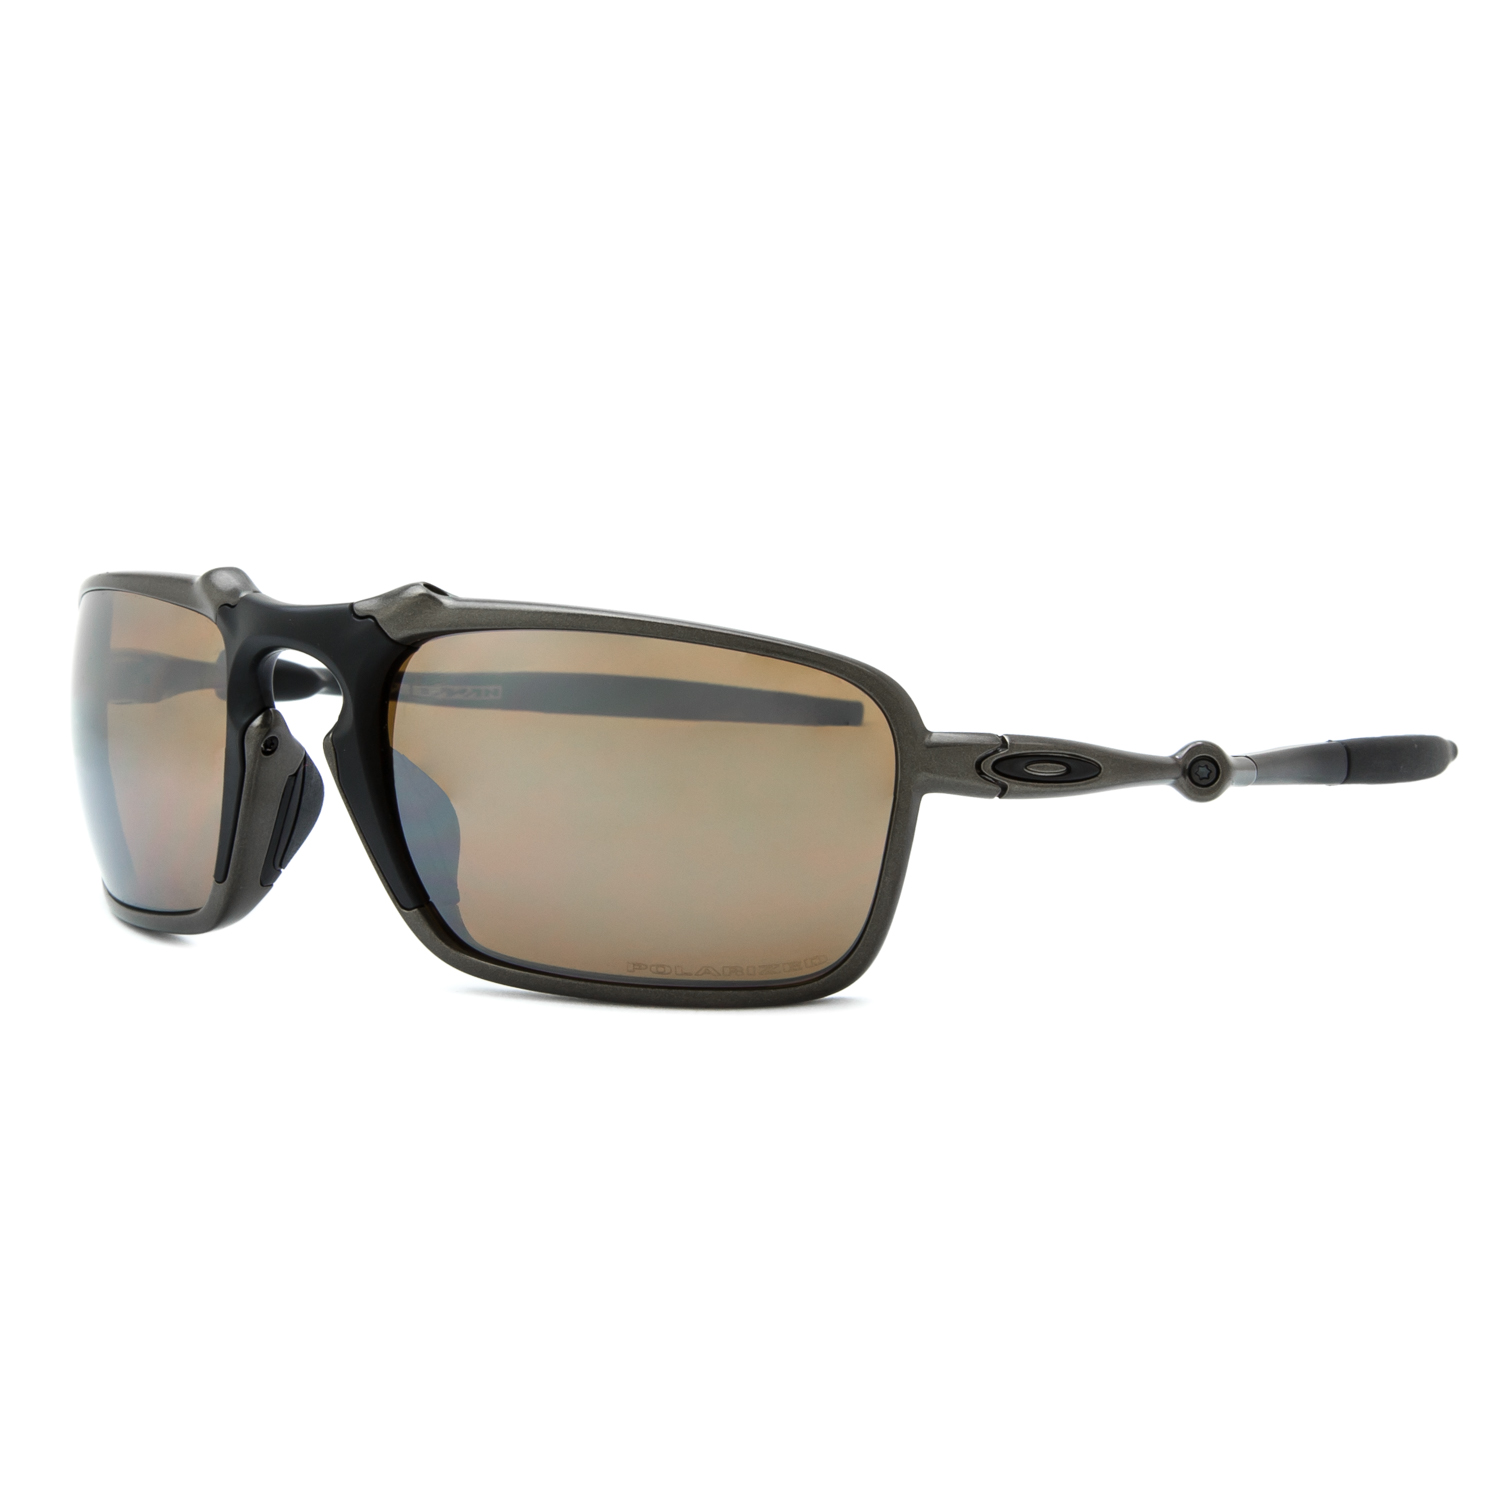 73c159bdb1 Cheap Oakley Juliet Sunglasses Ebay « Heritage Malta